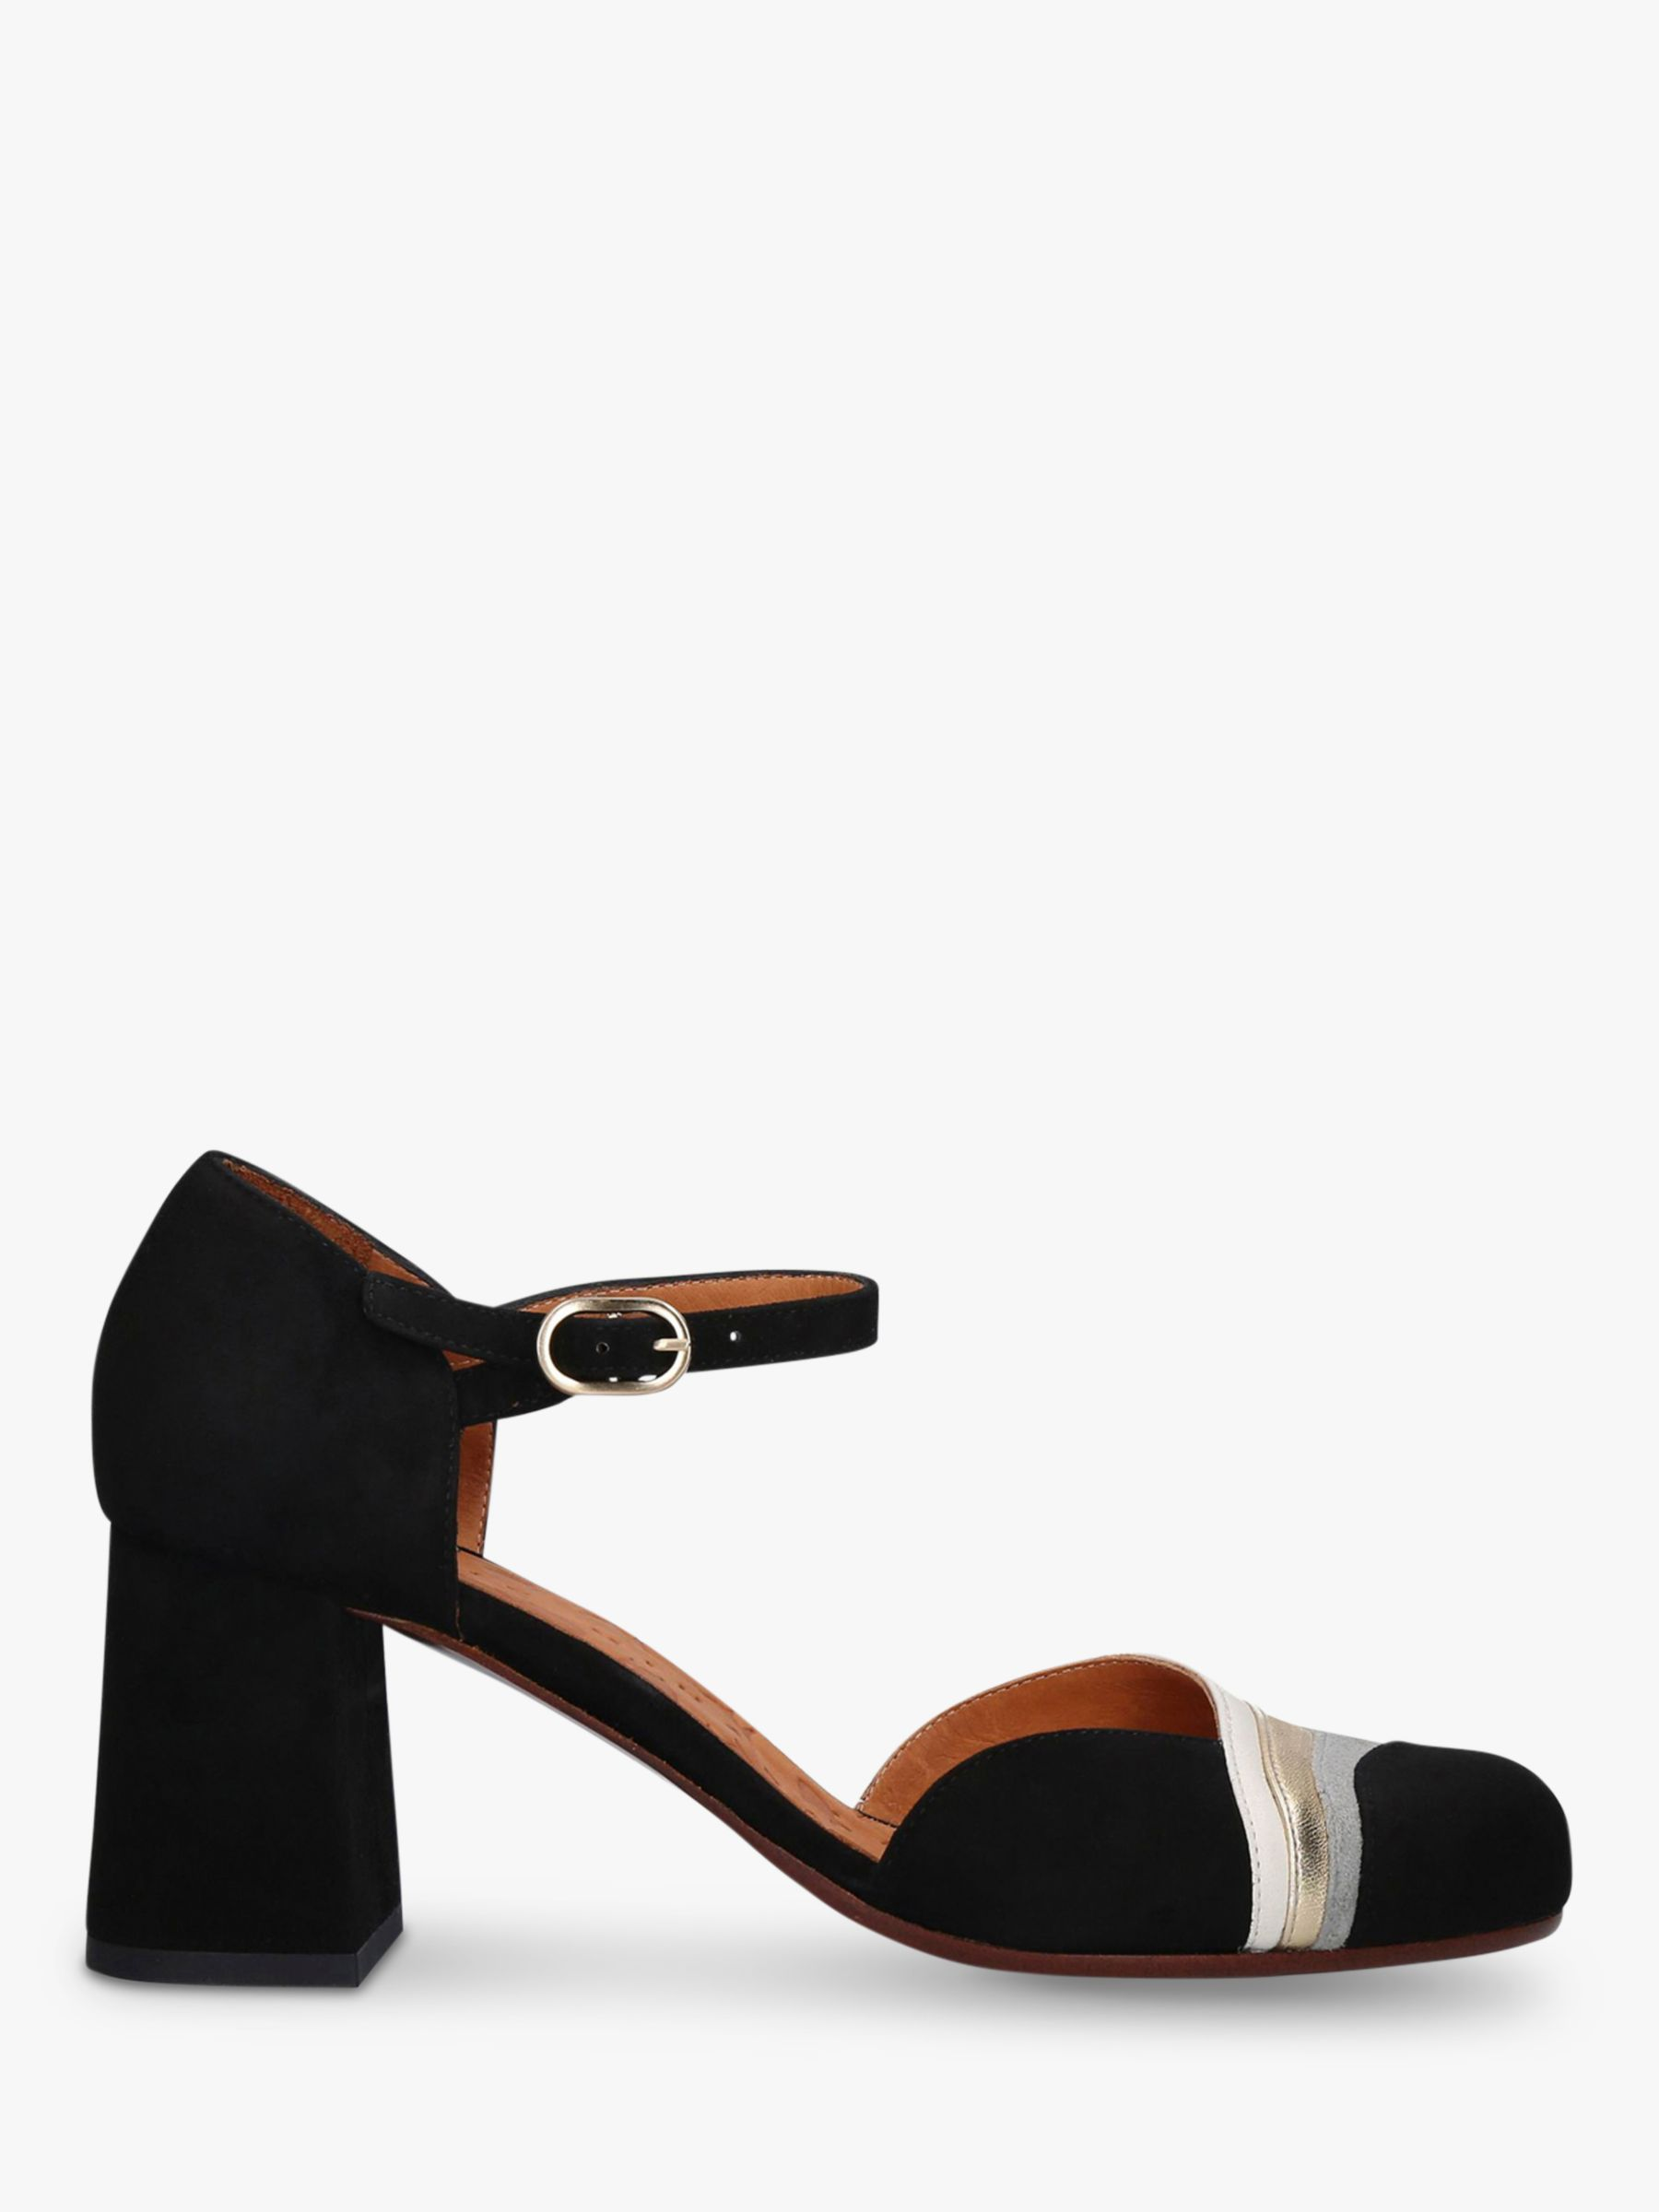 Chie Mihara Chie Mihara Moku Two Part Suede Block Heel Court Shoes, Black